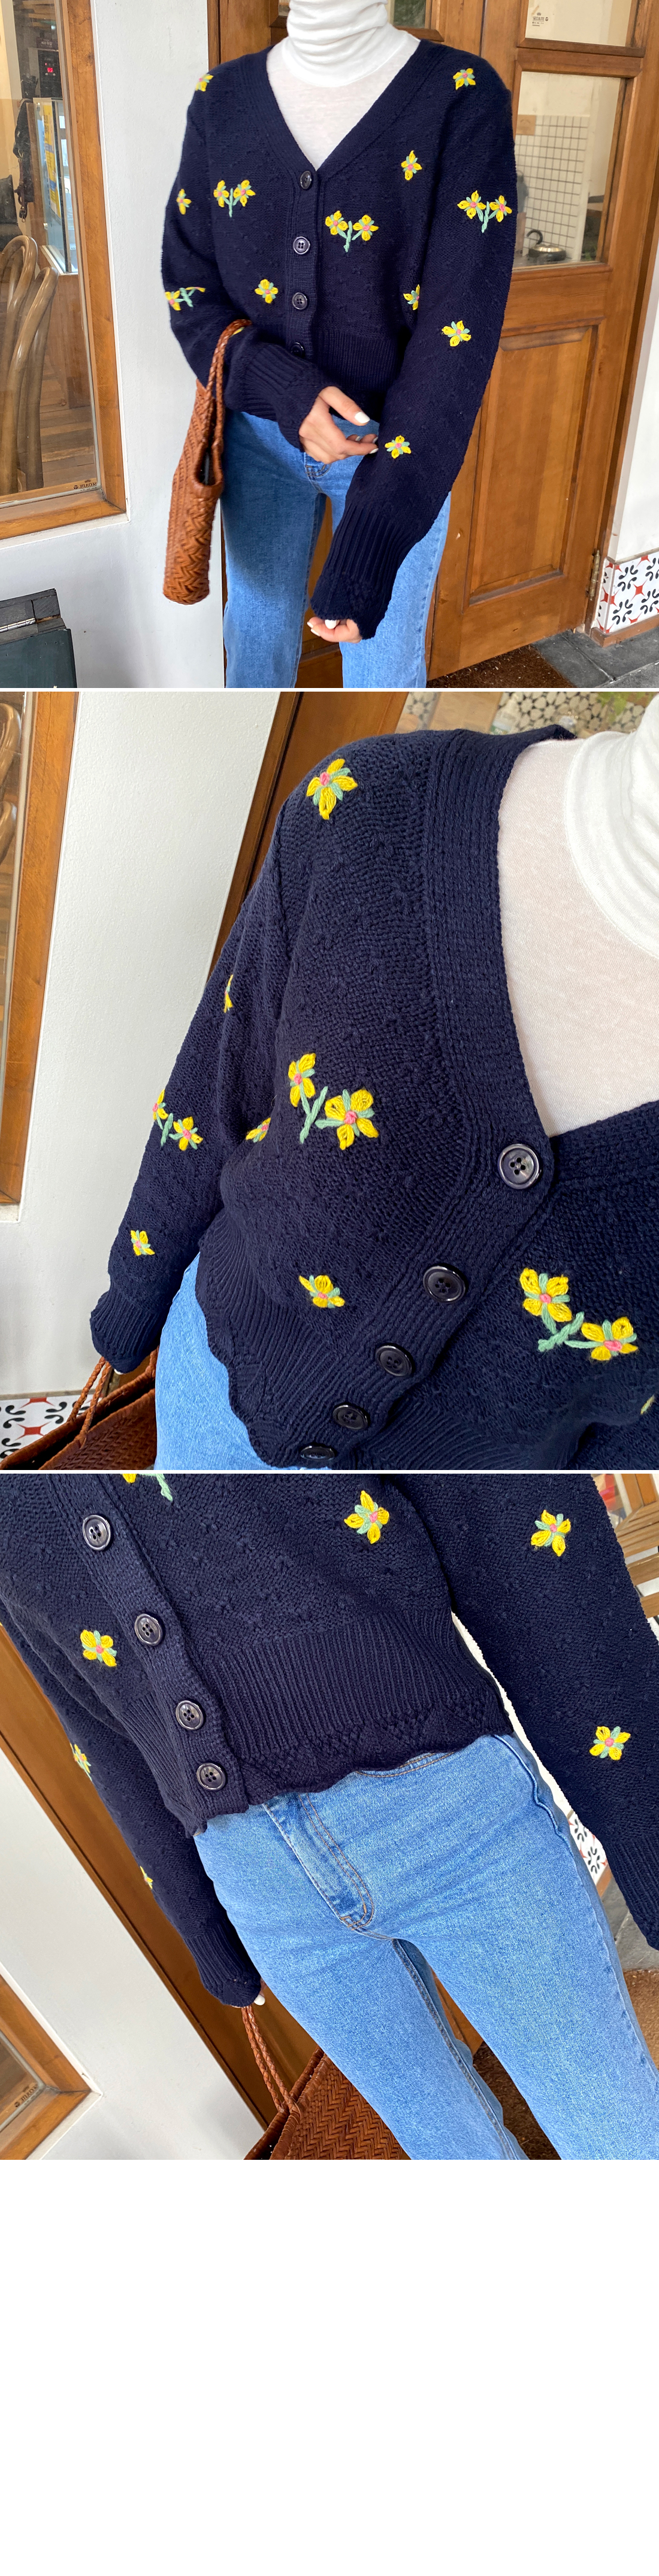 Flower embroidered mini cardigan